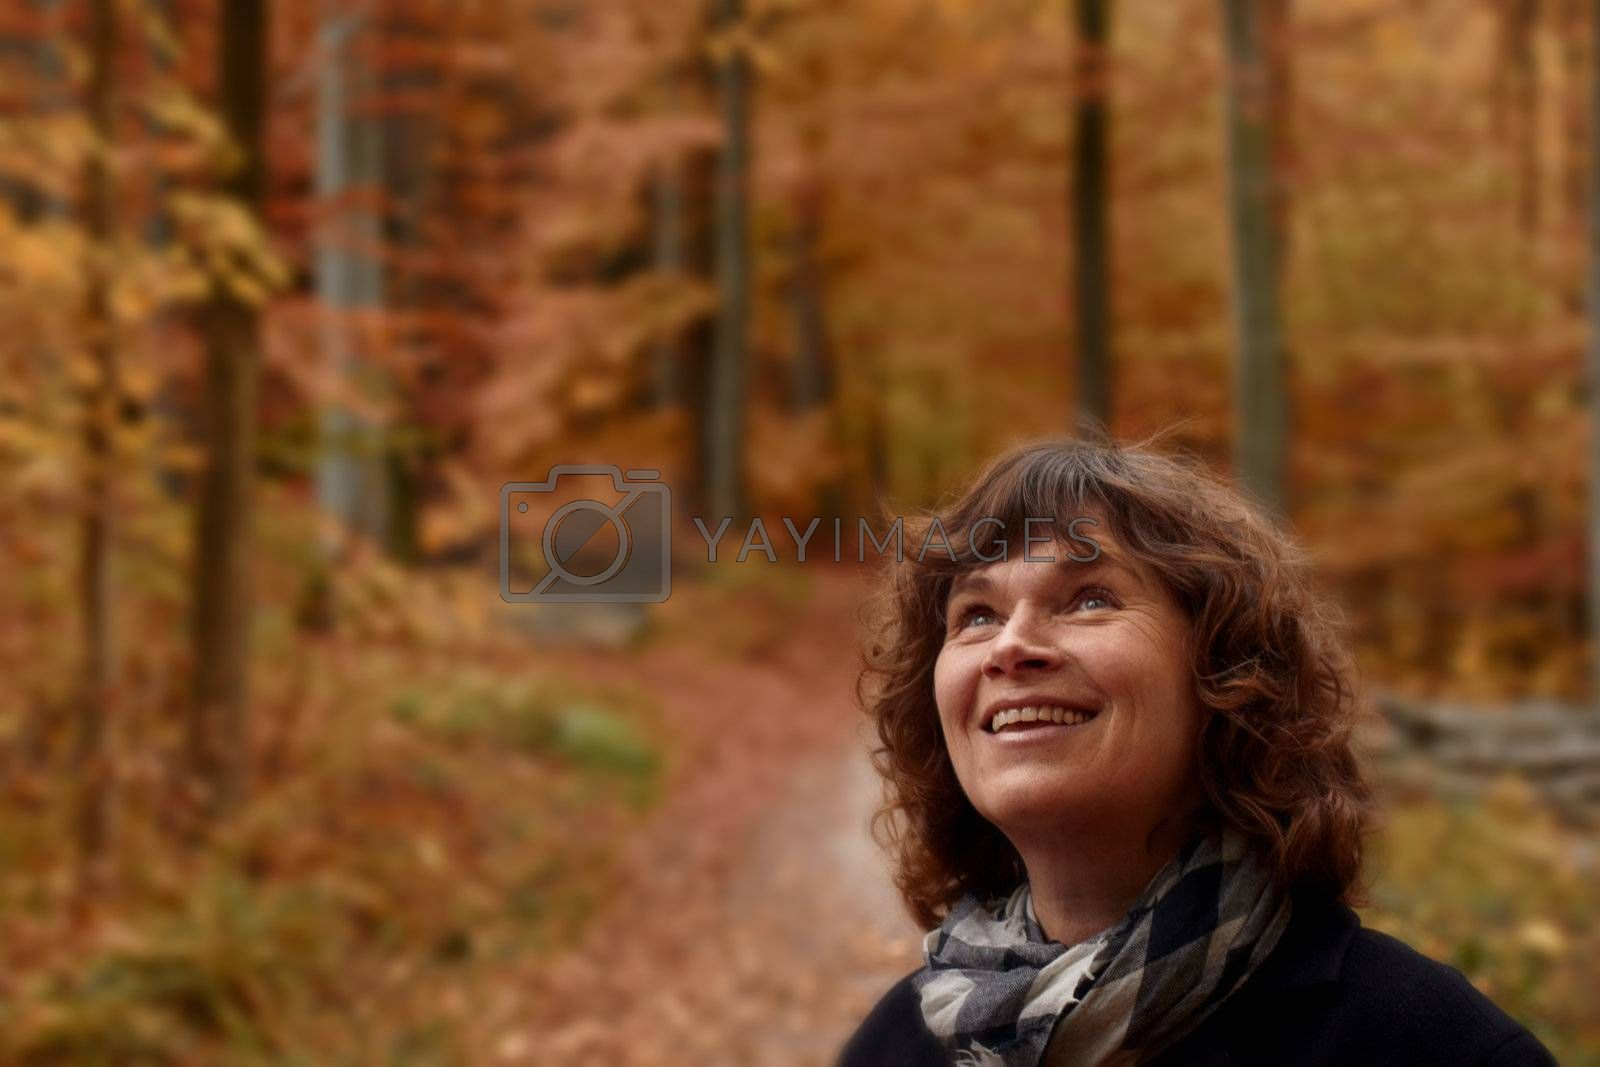 Royalty free image of Mature woman in forest looking up at copyspace by FreedomImage